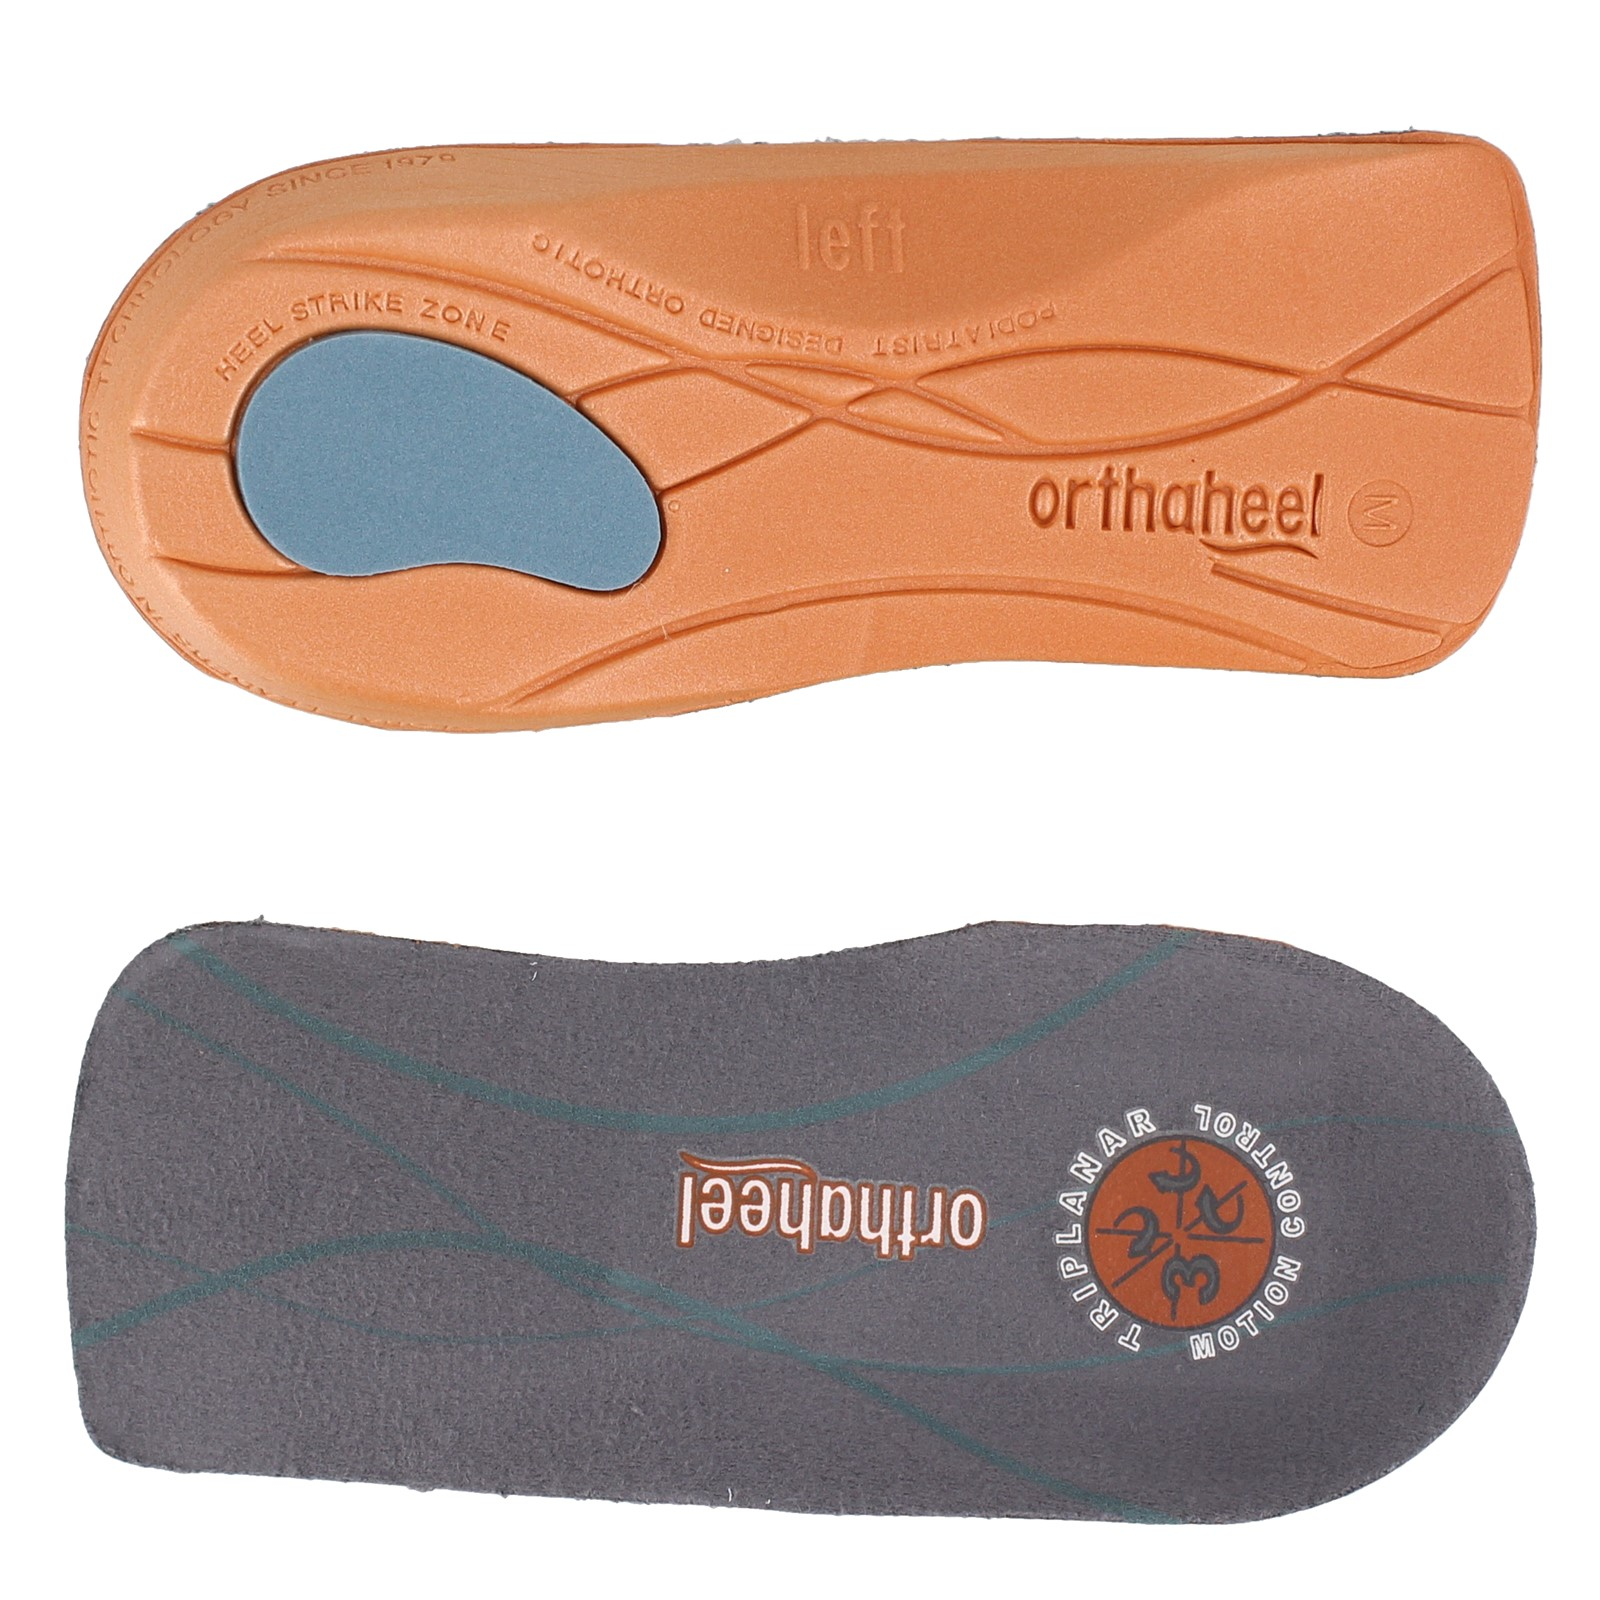 Vionic, Relief 3/4 Length Orthotic Insert